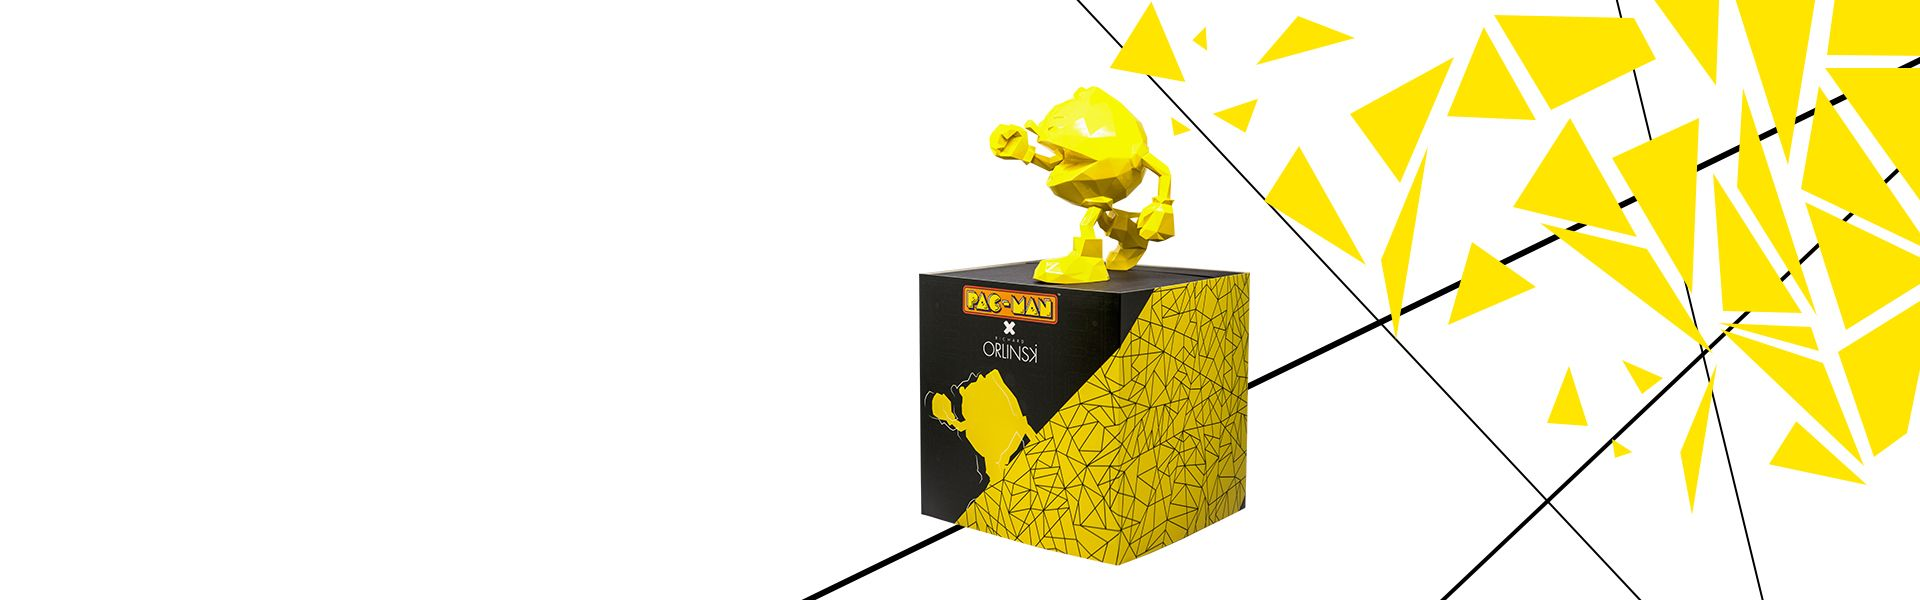 PAC-MAN x Orlinski : The official sculpture